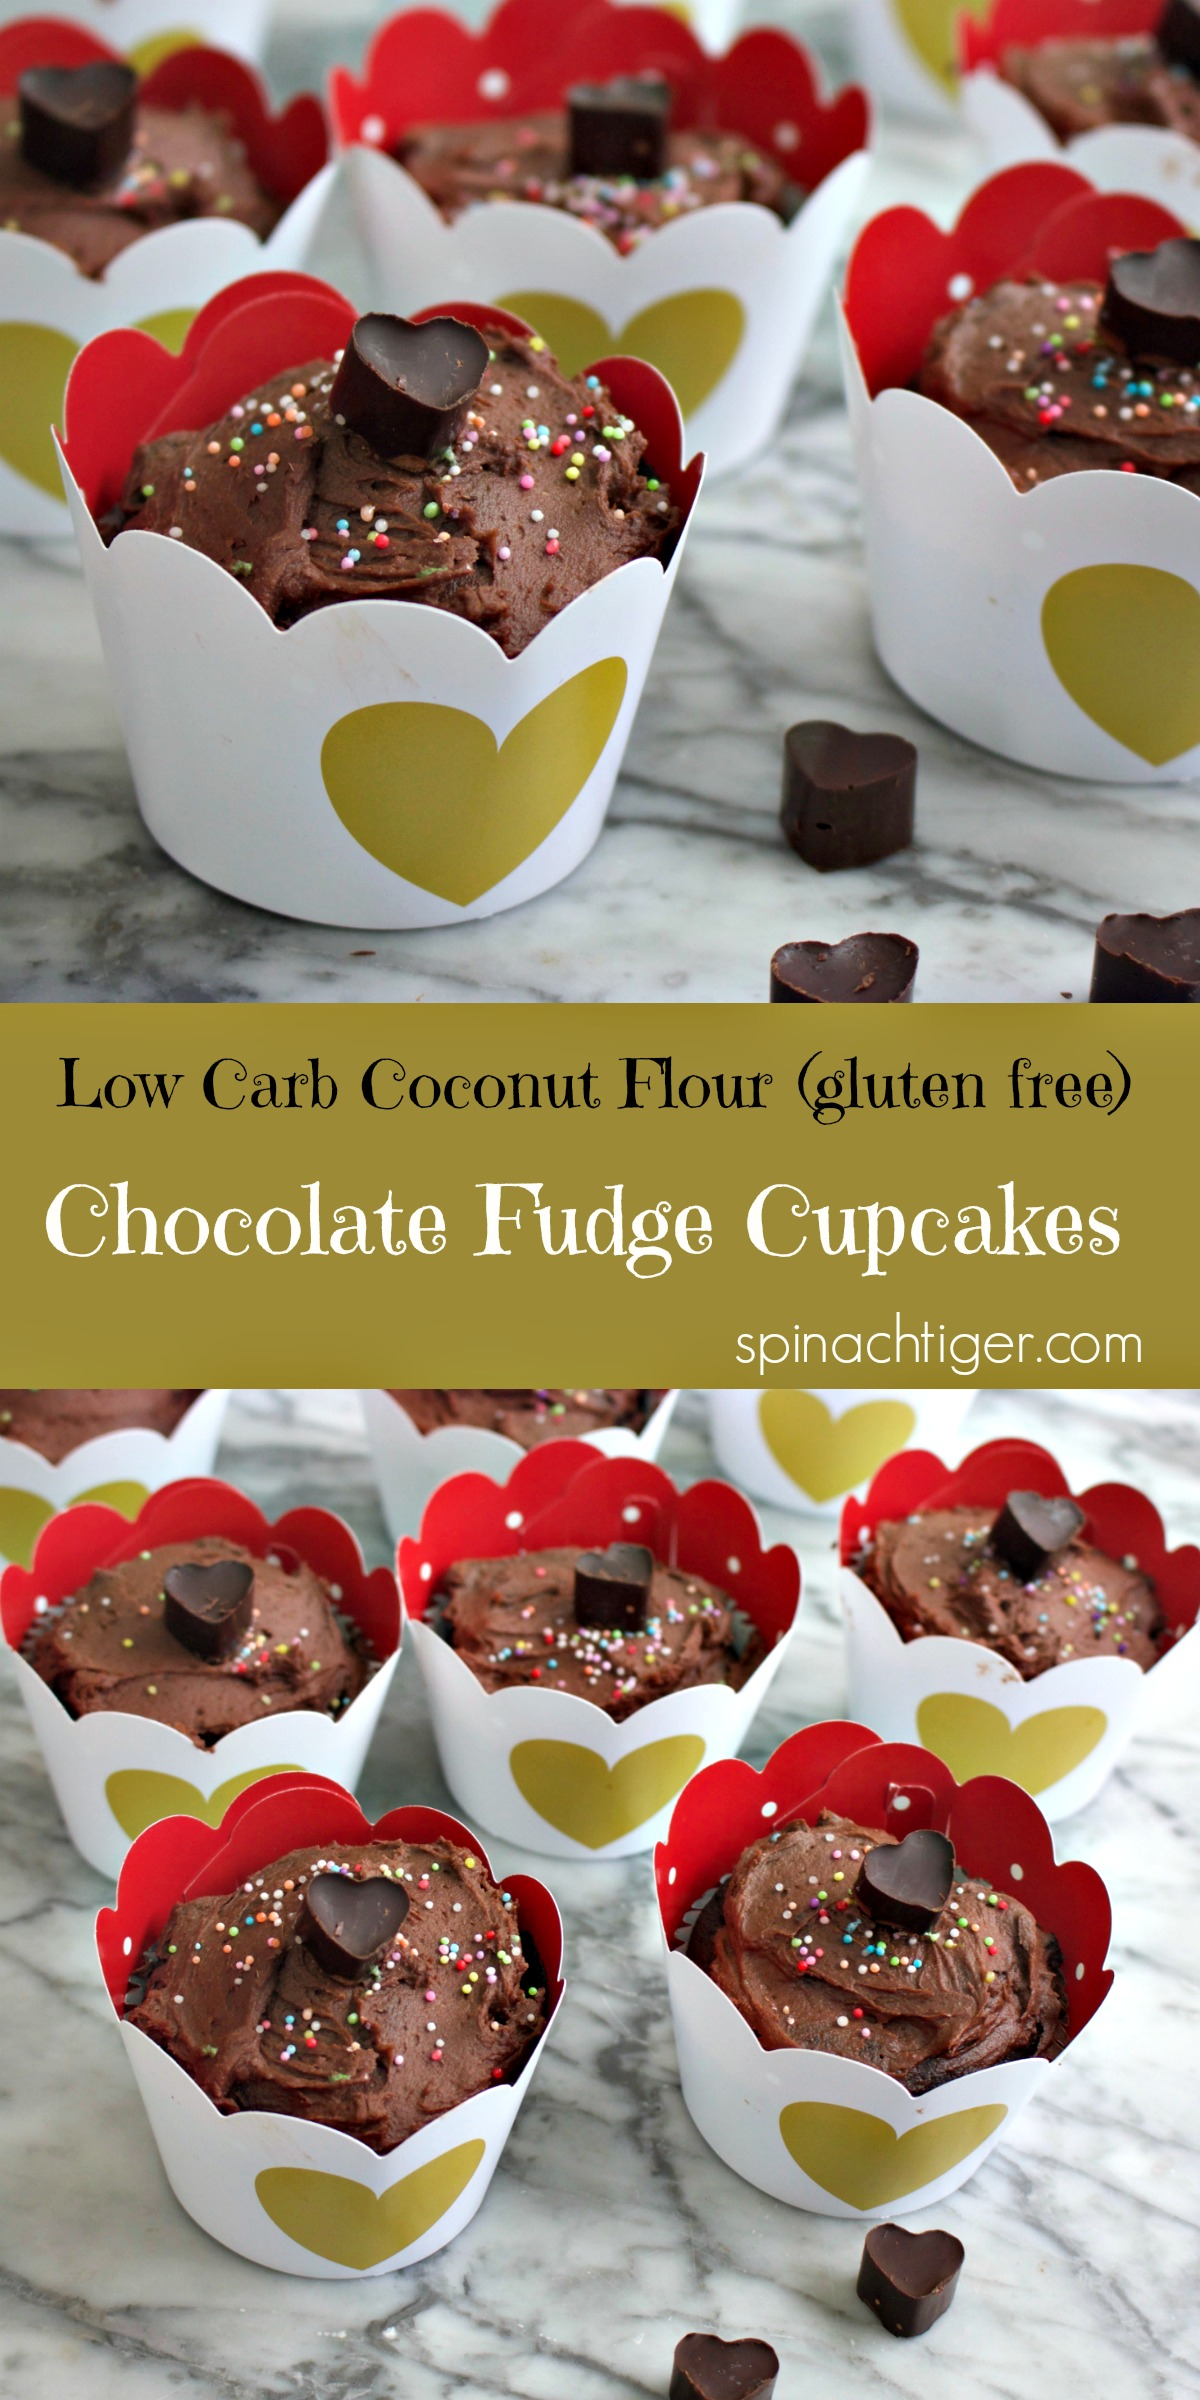 Make the Best Chocolate Keto Low-Carb Cupcake Recipe from Spinach Tiger